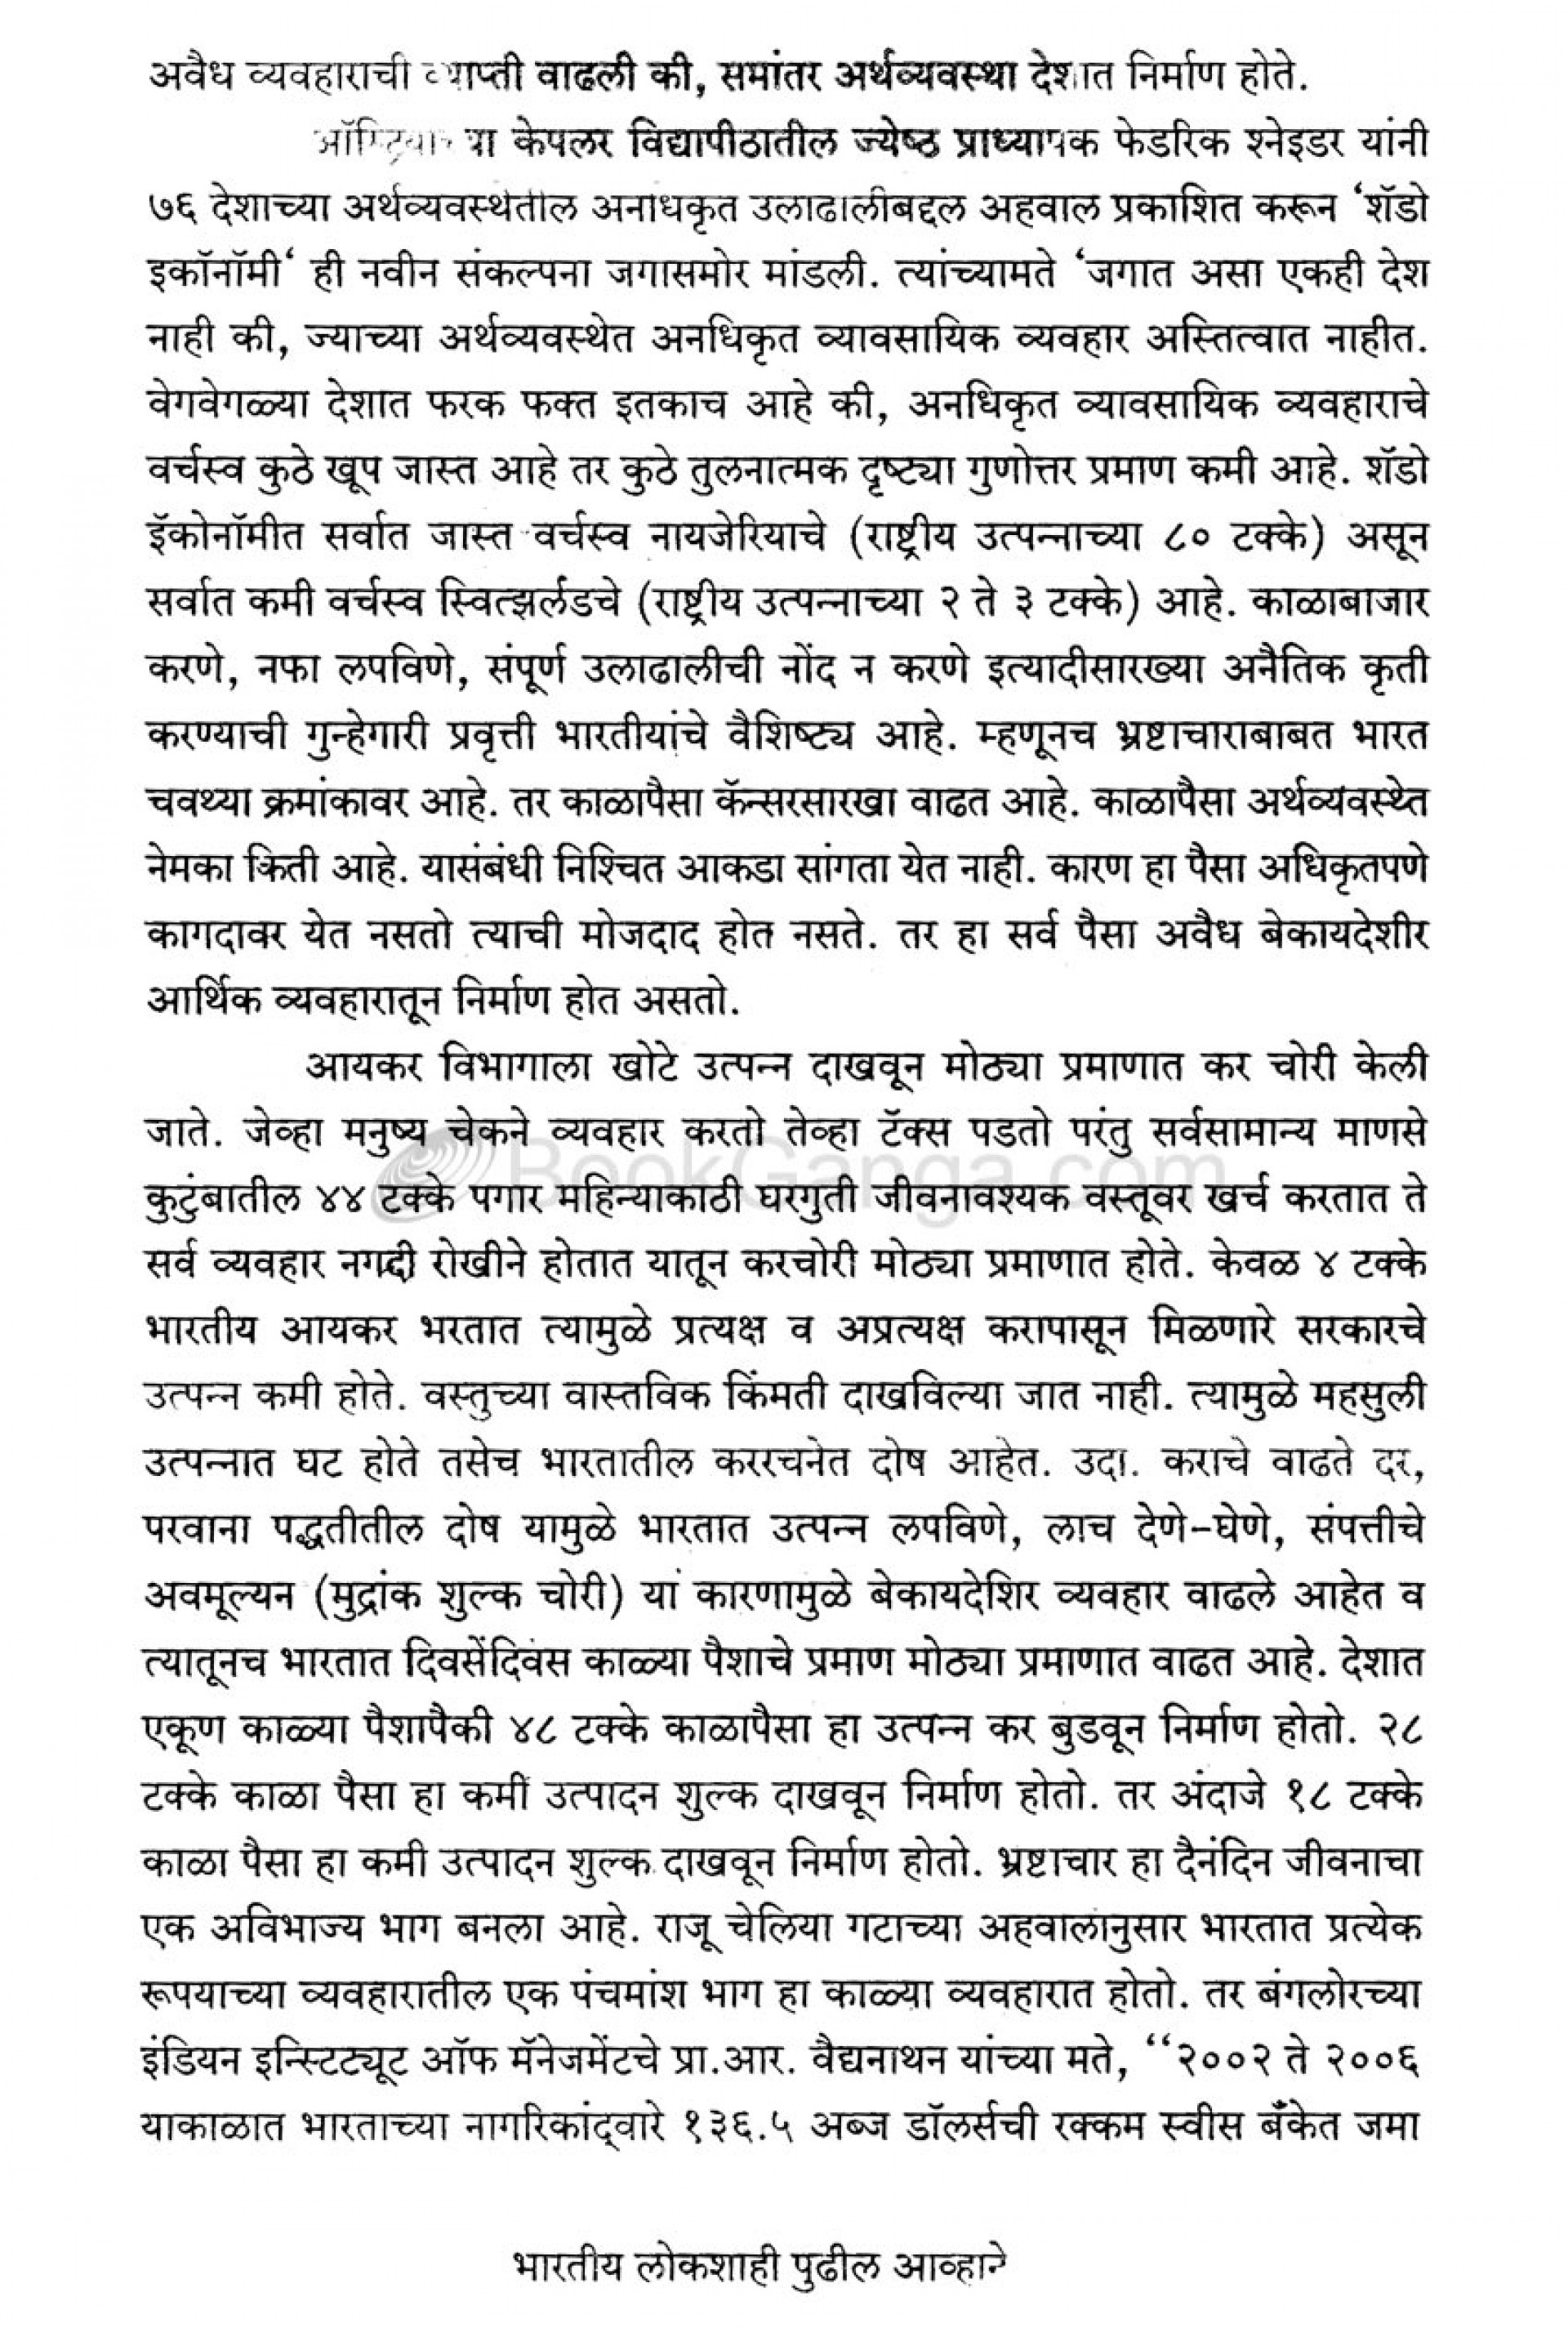 015 Marathi Essay On Rain Example Formidable First Day Of In Language Writing Rainy Season Wikipedia 1920